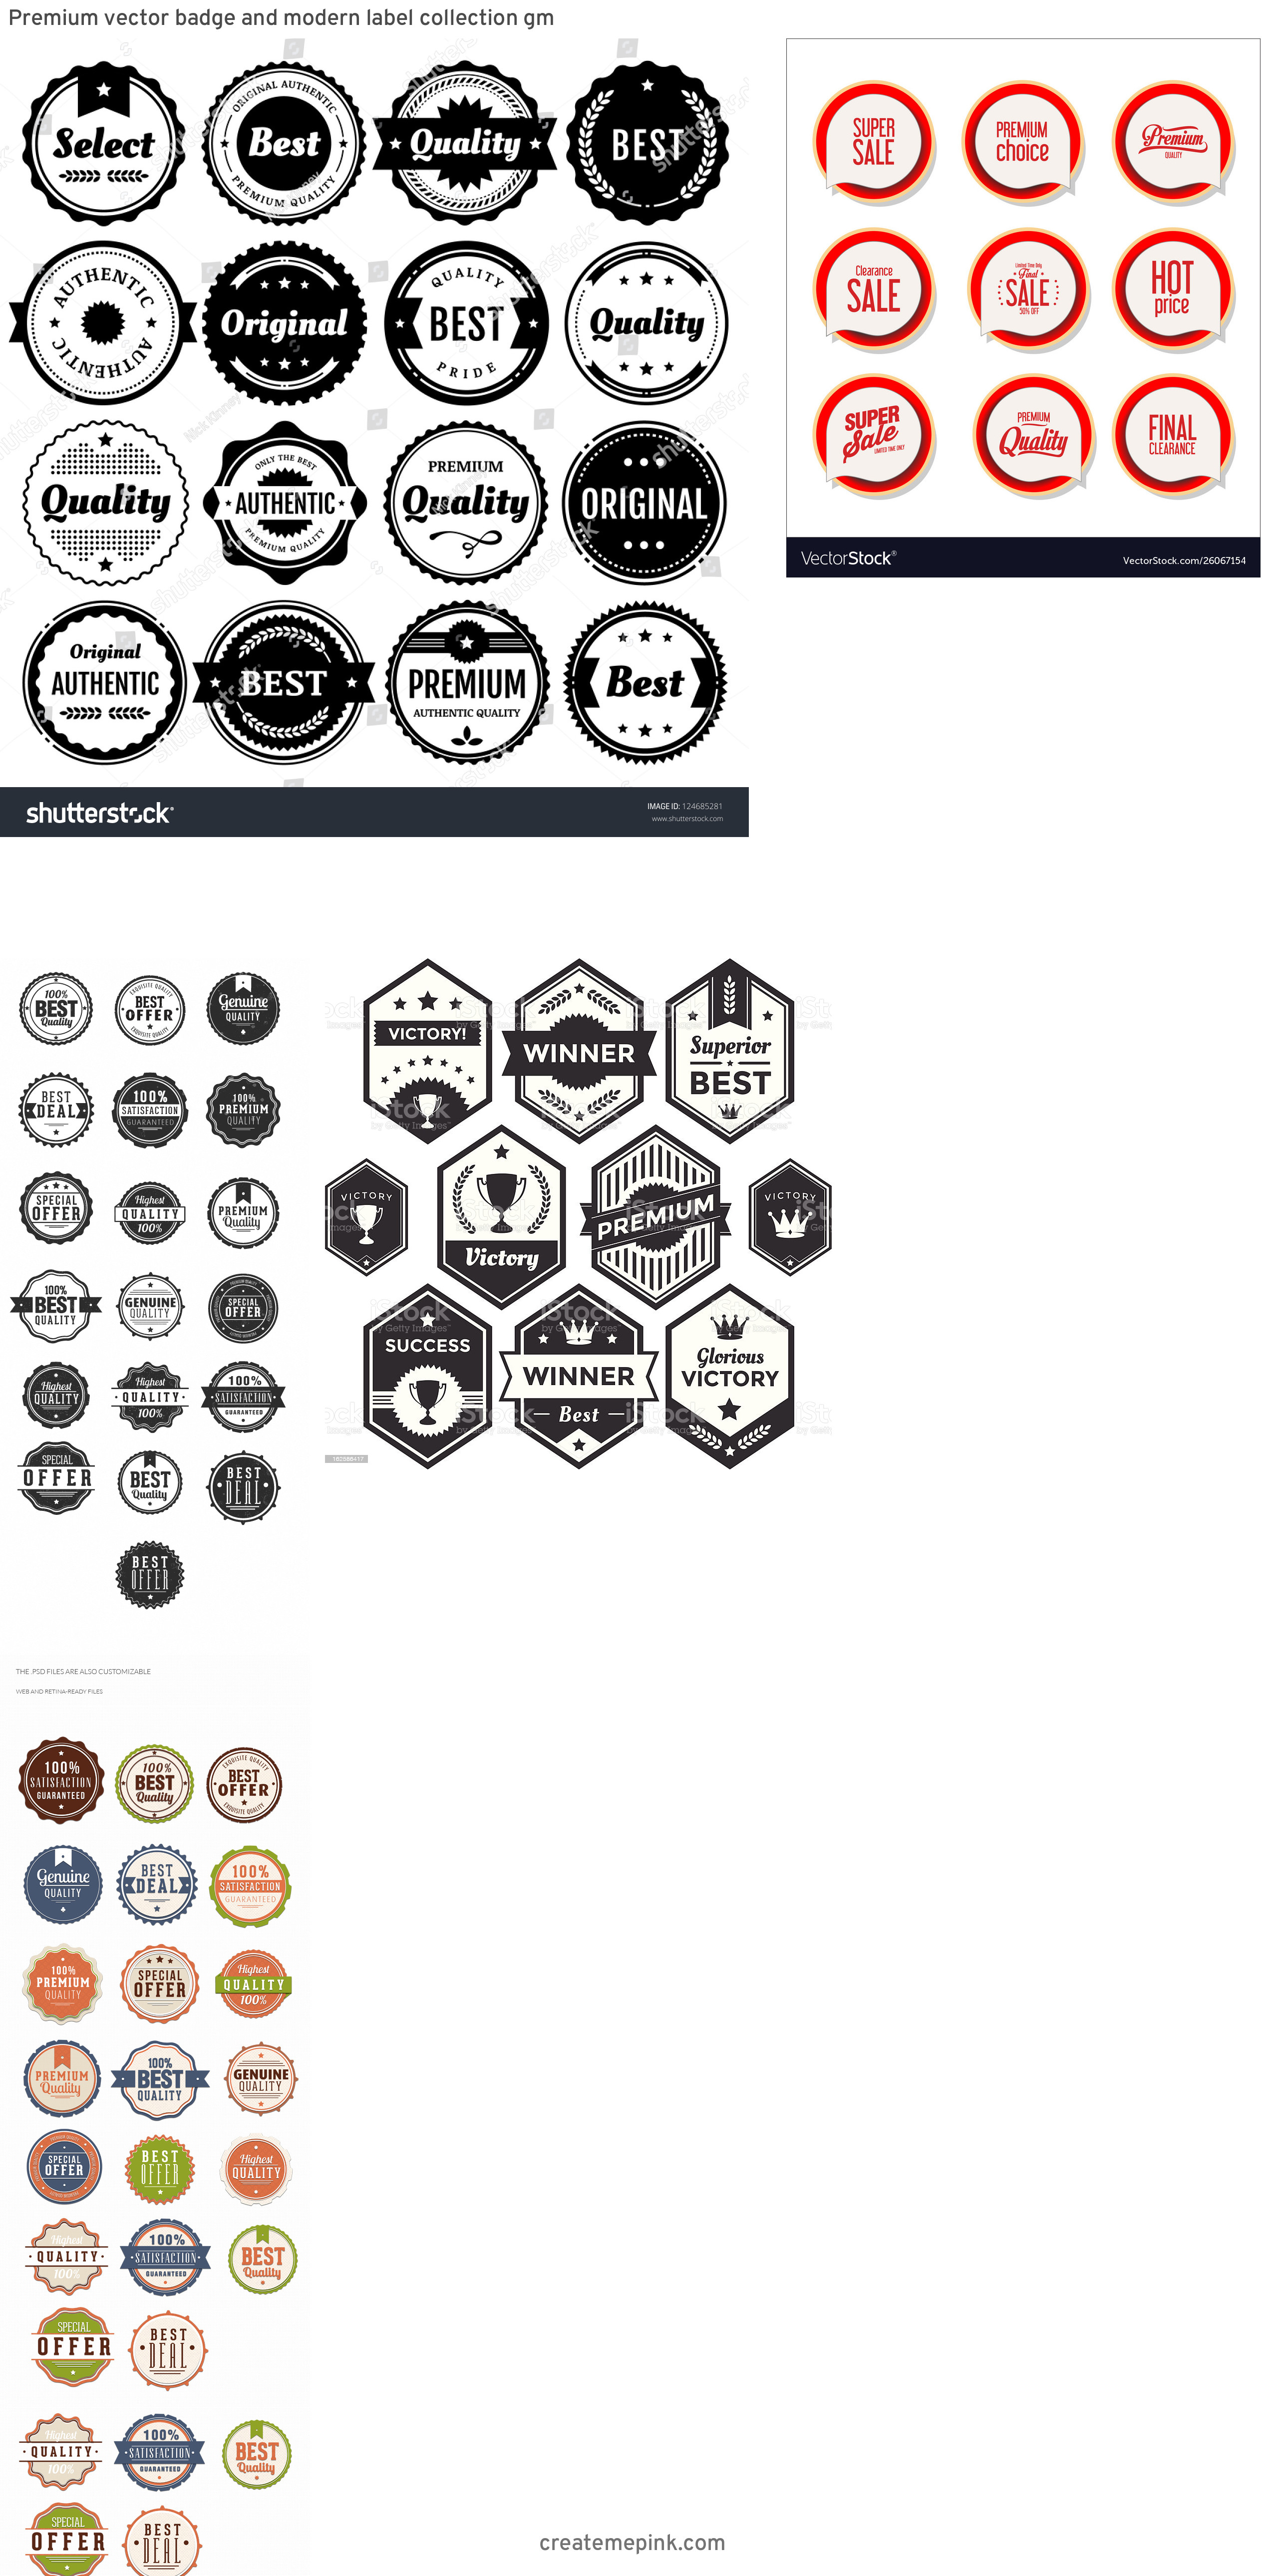 Modern Vector Badges: Premium Vector Badge And Modern Label Collection Gm